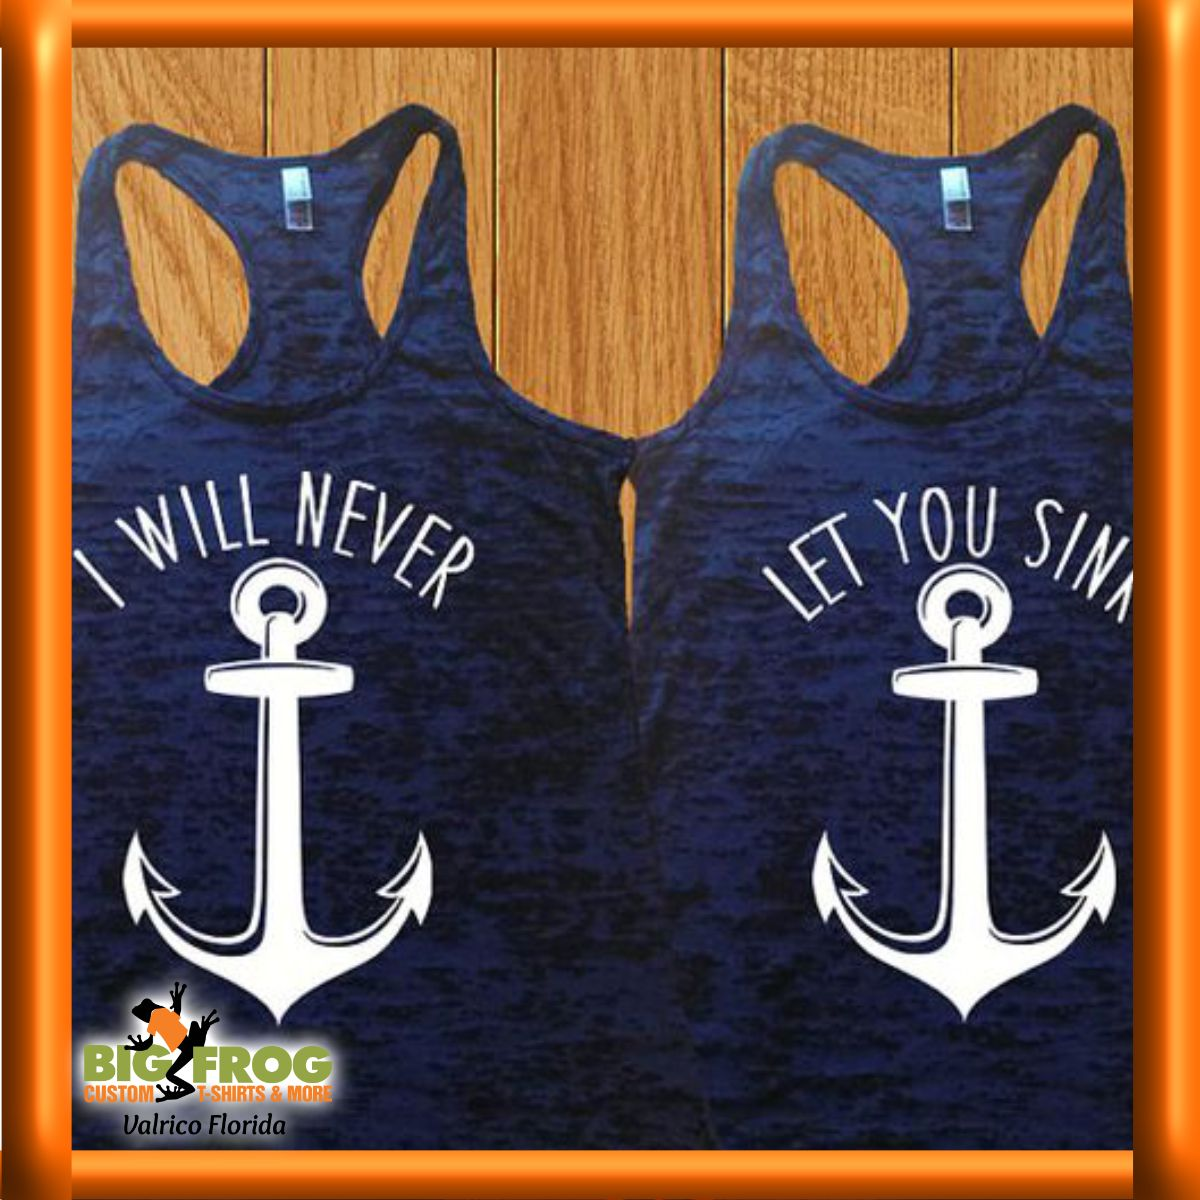 Nautical BFF shirt, get yours customized at #BigFrog of #Valrico.